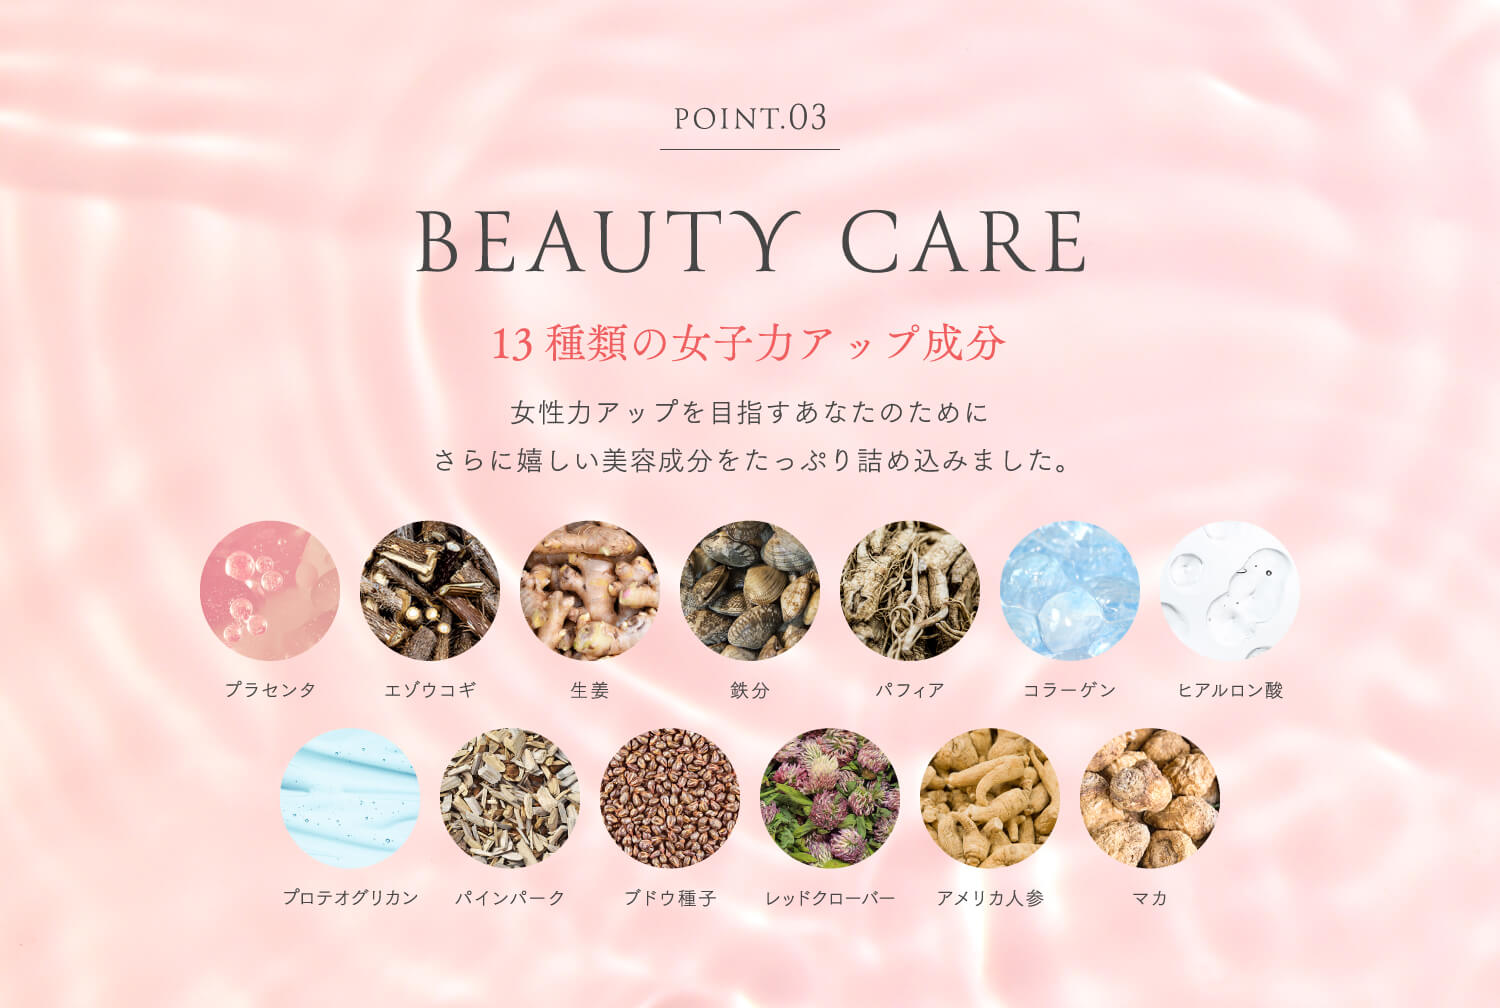 POINT.03 BEAUTY CARE